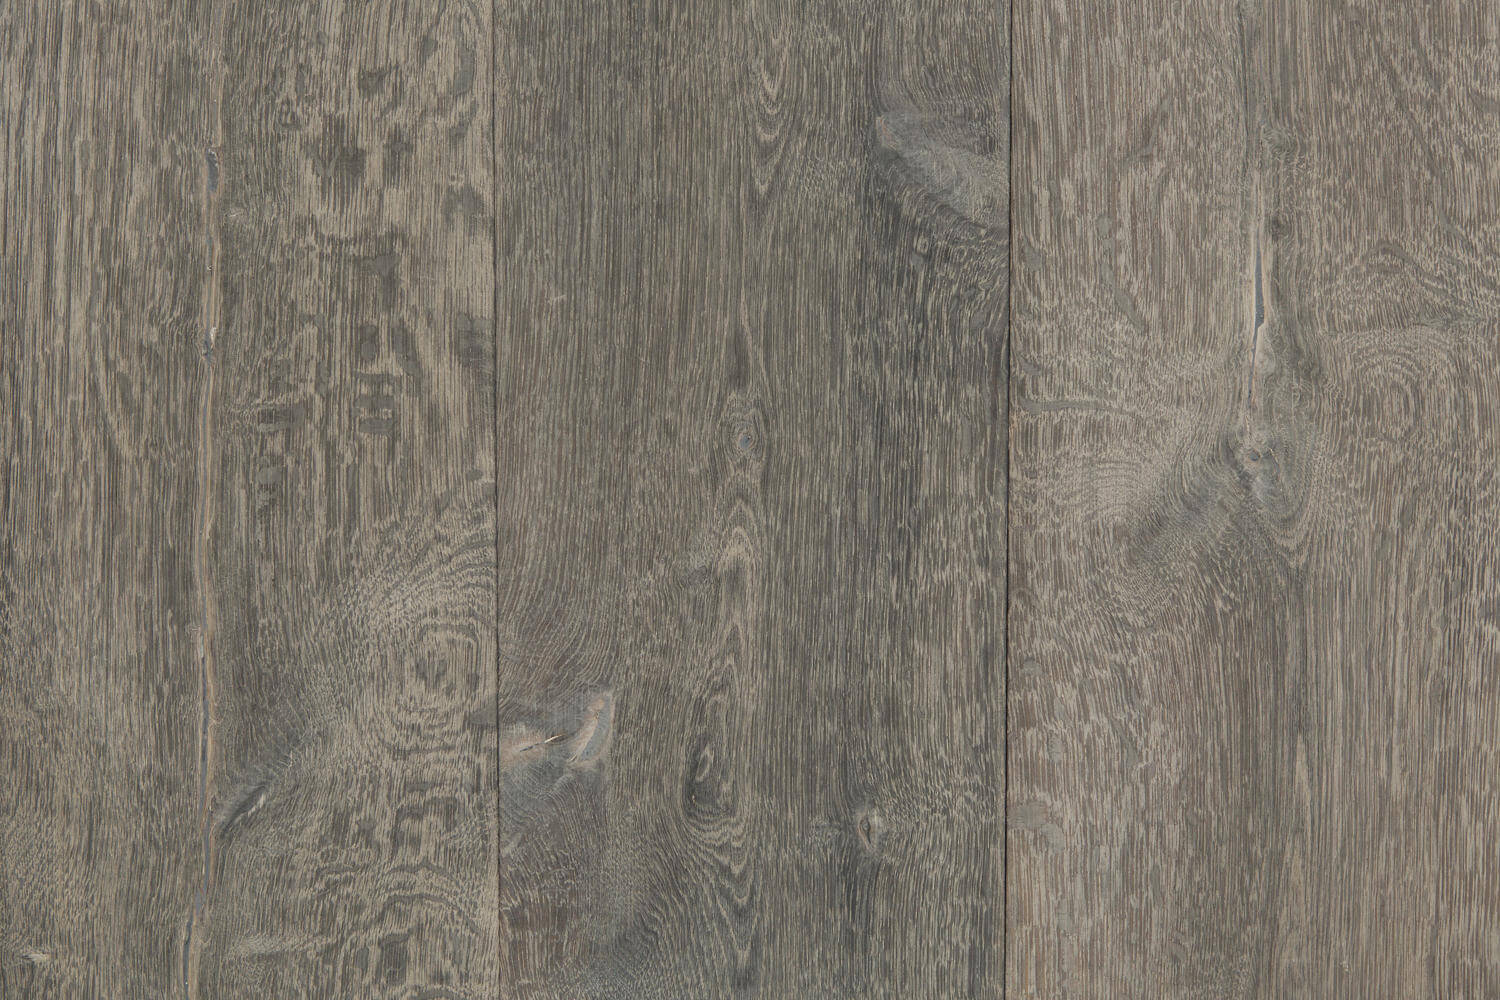 3 Oak Floor Product Antique Grey Oak